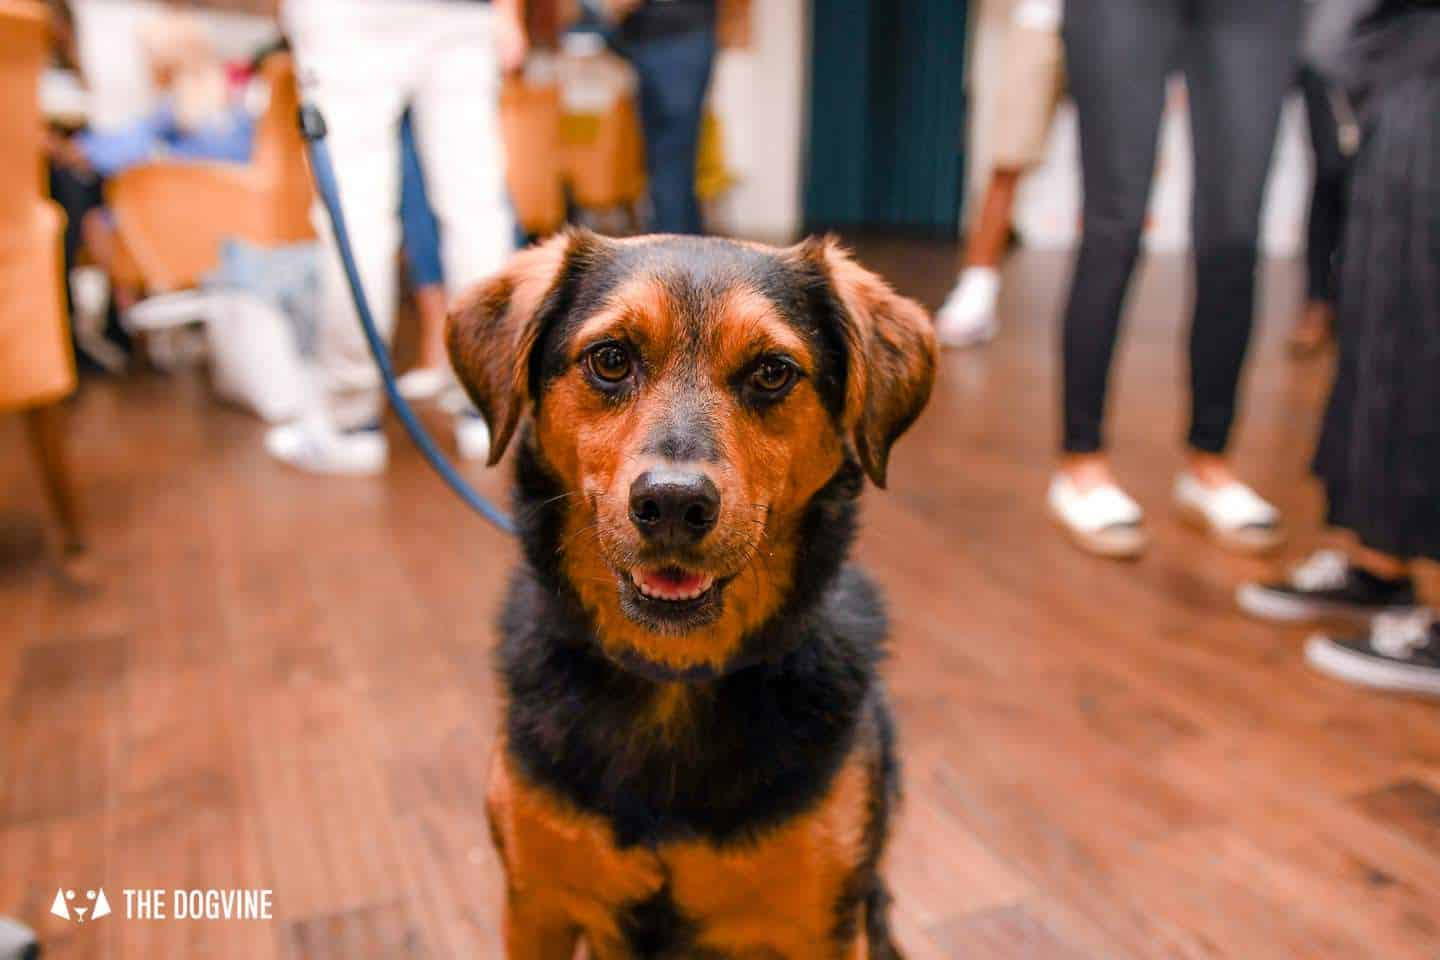 Dog-Friendly Cinema Picturehouse East Dulwich | Fantastic Beasts